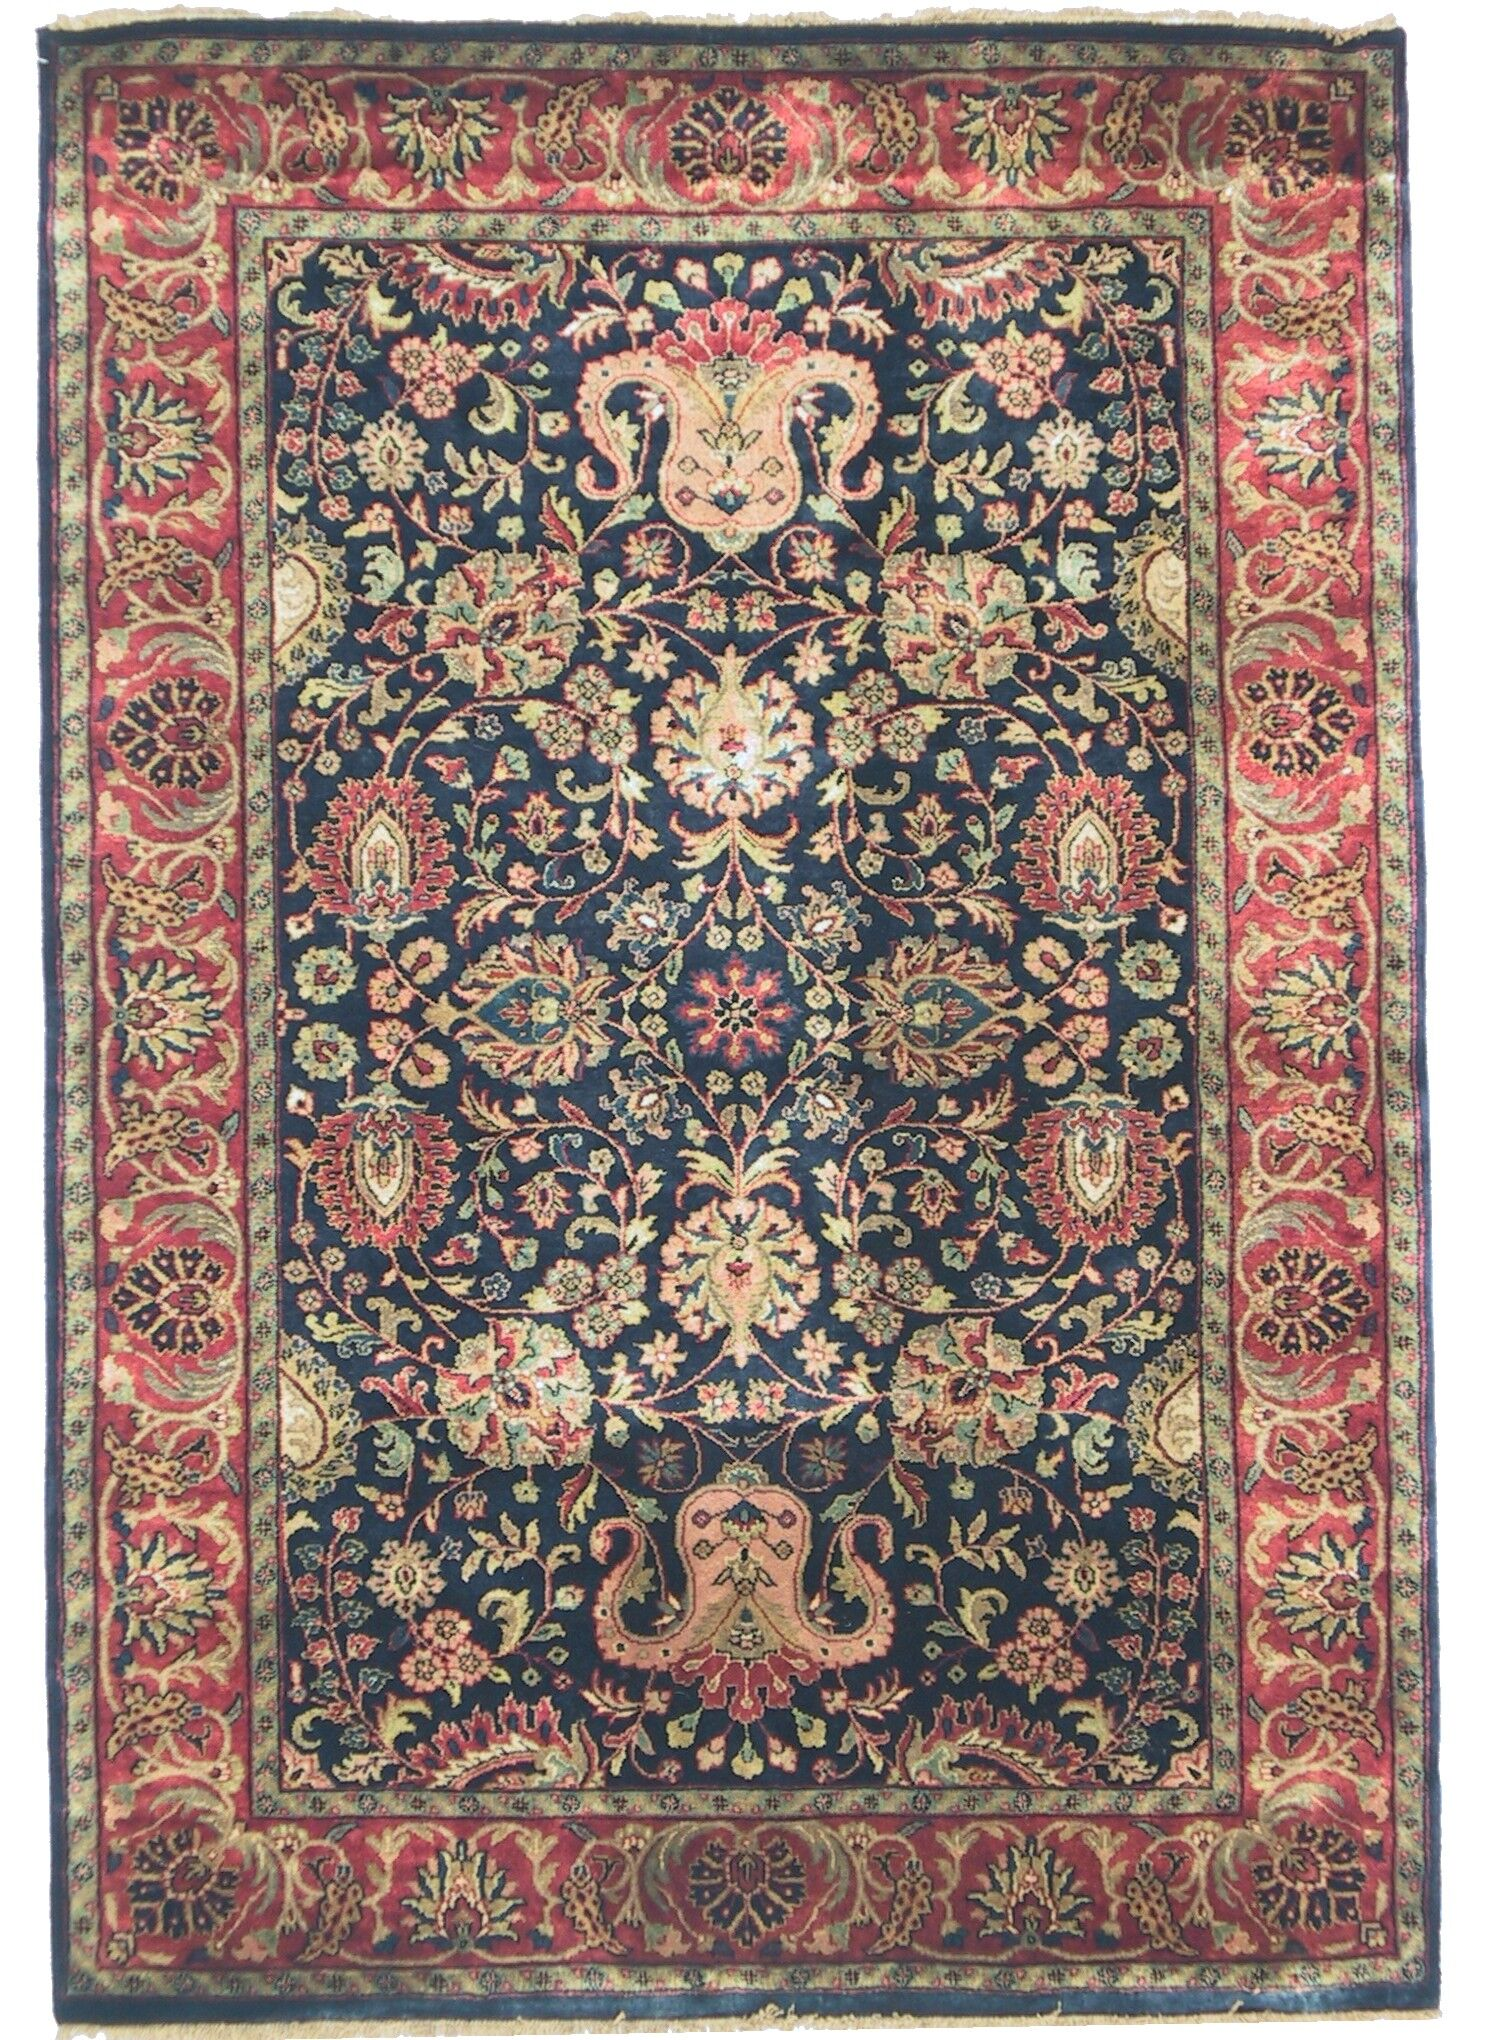 Super Mashad Hand-Knotted Wool Navy/Red Area Rug Rug Size: Rectangle 6' x 9'